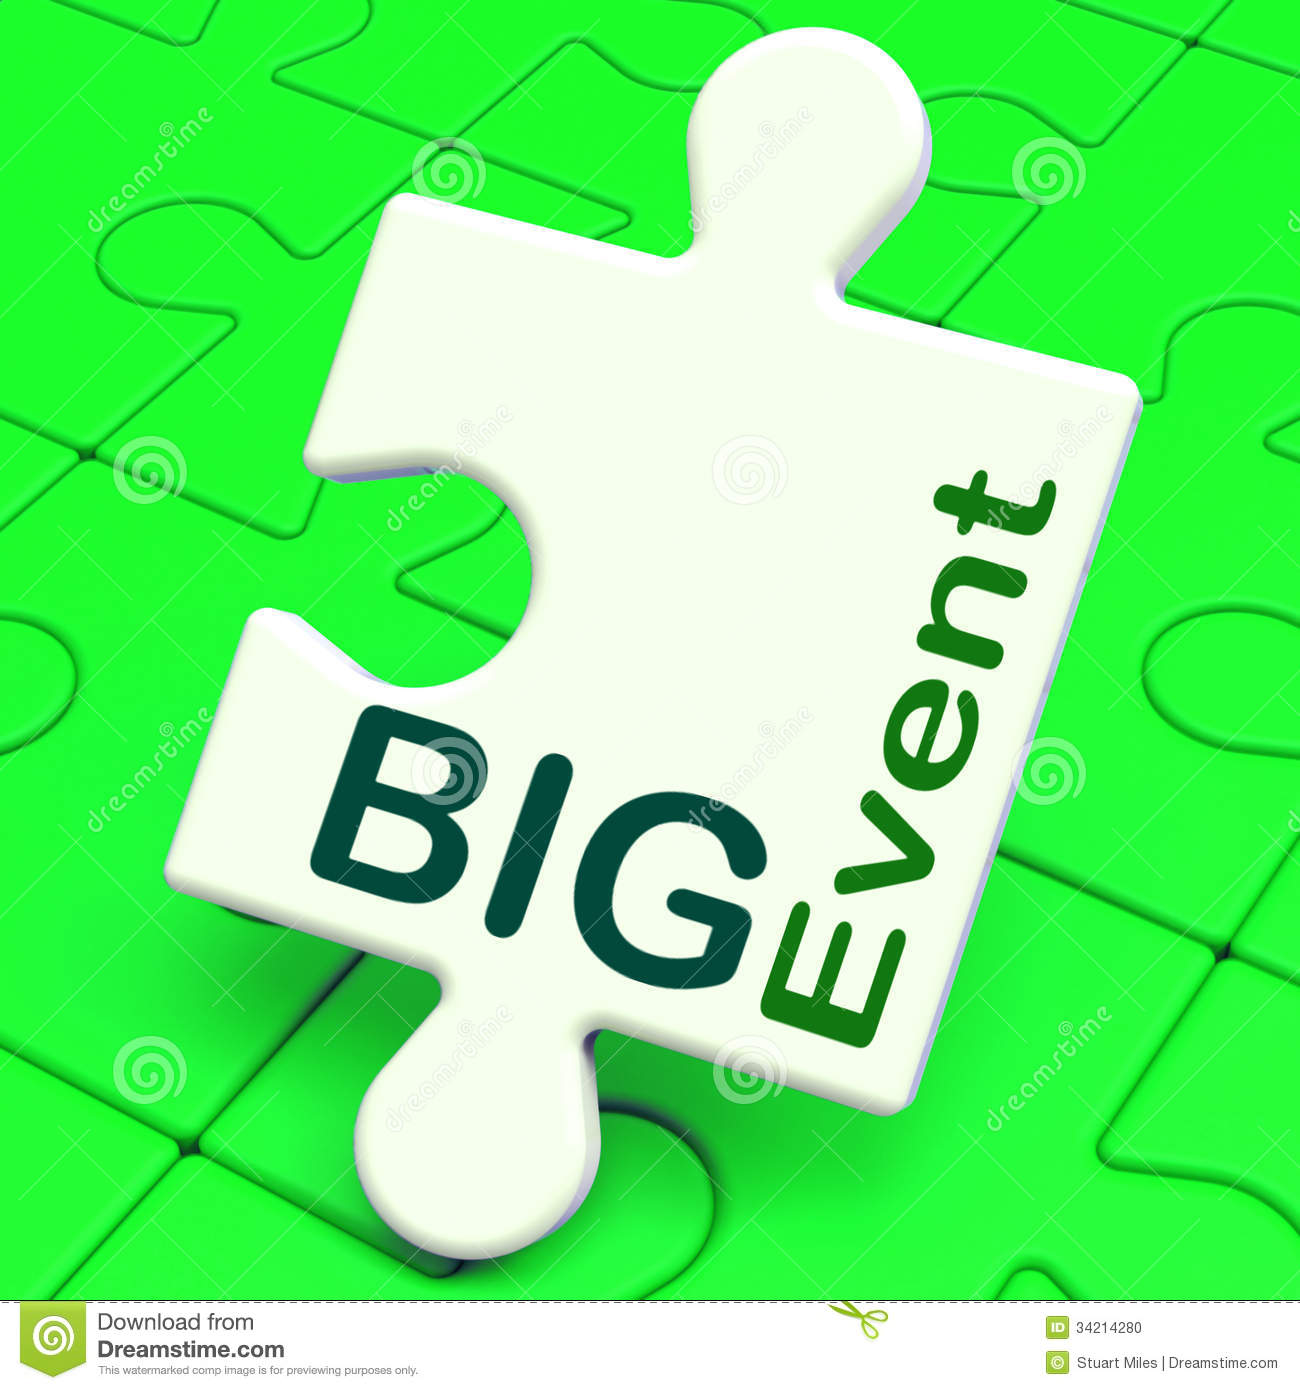 Big Event Puzzle Shows Celebration Occasion And Performance Stock.